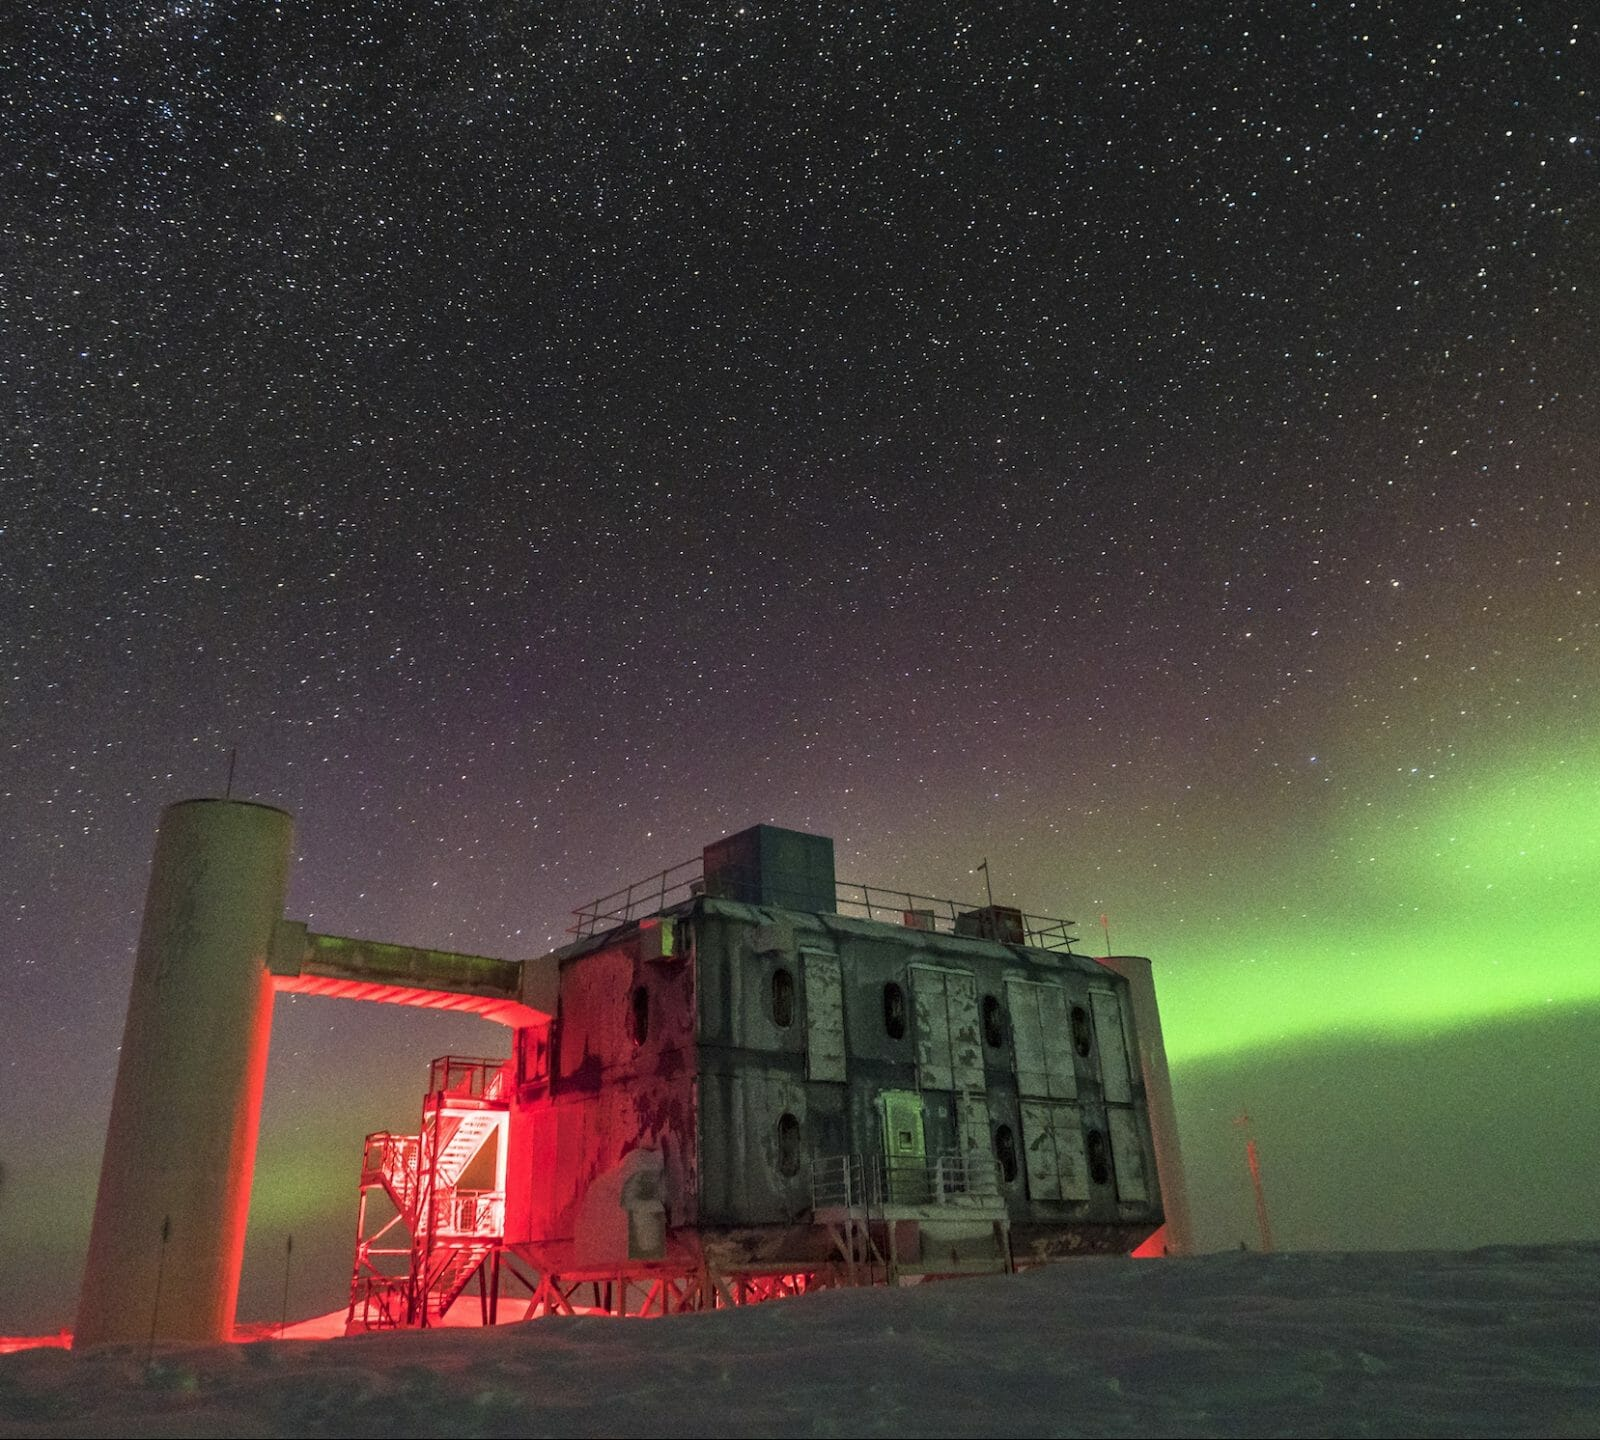 Fermi Telescope discovers neutrino's origin as supermassive black hole